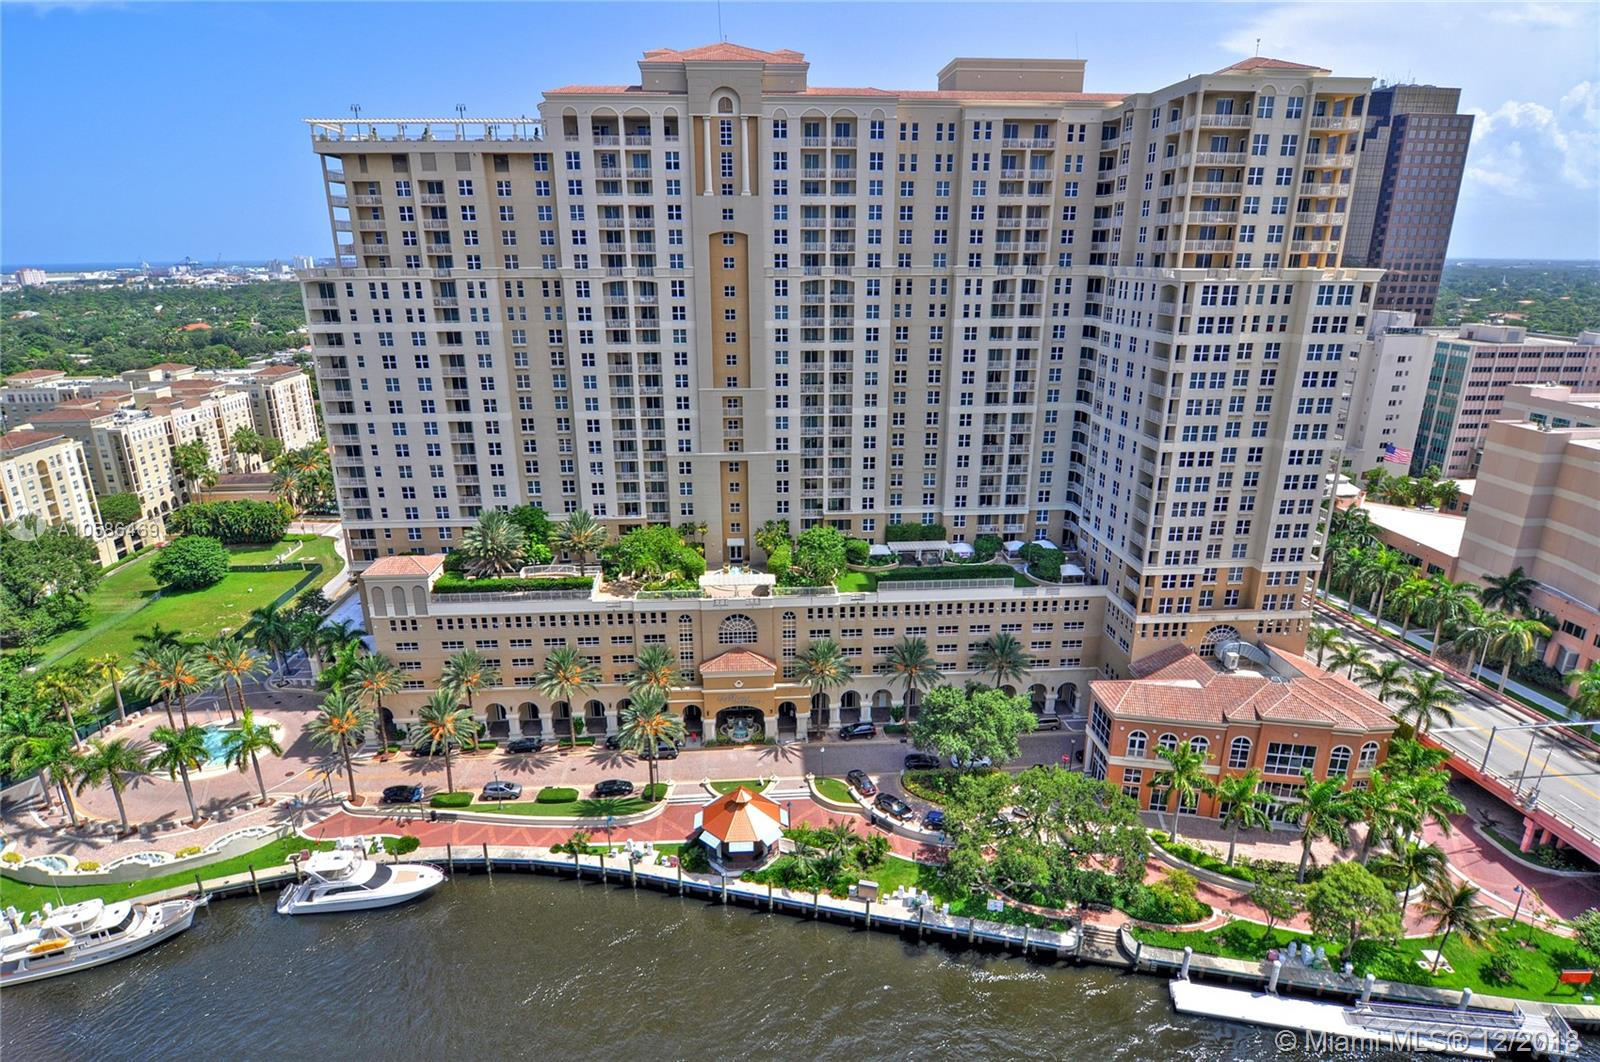 Reduced!  Just Updated 3 Bed/2 Bath Condo in convenient Nu River Landings.  Large unit features tasteful & top-quality upgrades: A new kitchen w/ white cabinets, beautiful quartz counter-tops, extra deep sink, plus GE Elite SS appliances.  New bathrooms w/ plenty of cabinets, upgraded showers & fixtures, updated lighting, mirrors, & handicap accessible master-bath. New flooring is tile planks in living areas & rich wood in bedrooms. This home also has a separate utility room w/ full-sized washer, dryer, & a spare fridge. Beautiful South-East Views from the balcony, kitchen, & two bedrooms. Partial river view but that is not the main attraction in this exquisite condo.  Building's terrific amenities: roof top pool, indoor basketball, spa, valet, and more. Make Nu River Landings your home.